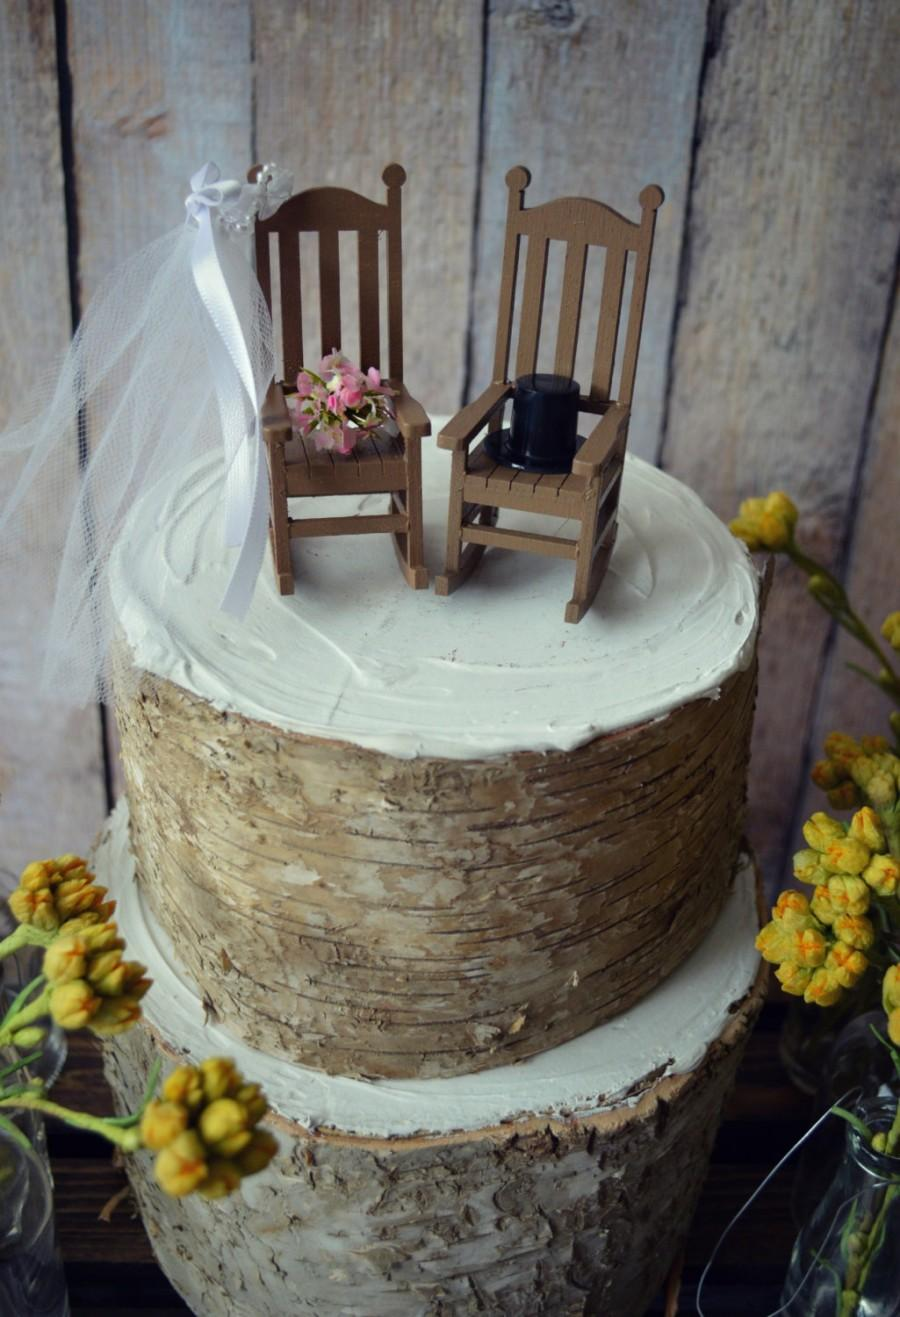 Hochzeit - Rocking chair-cake topper-rustic-shabby-woodlands-Mr.and Mrs.-wedding cake topper-wedding-country-bride and groom-chairs-just married